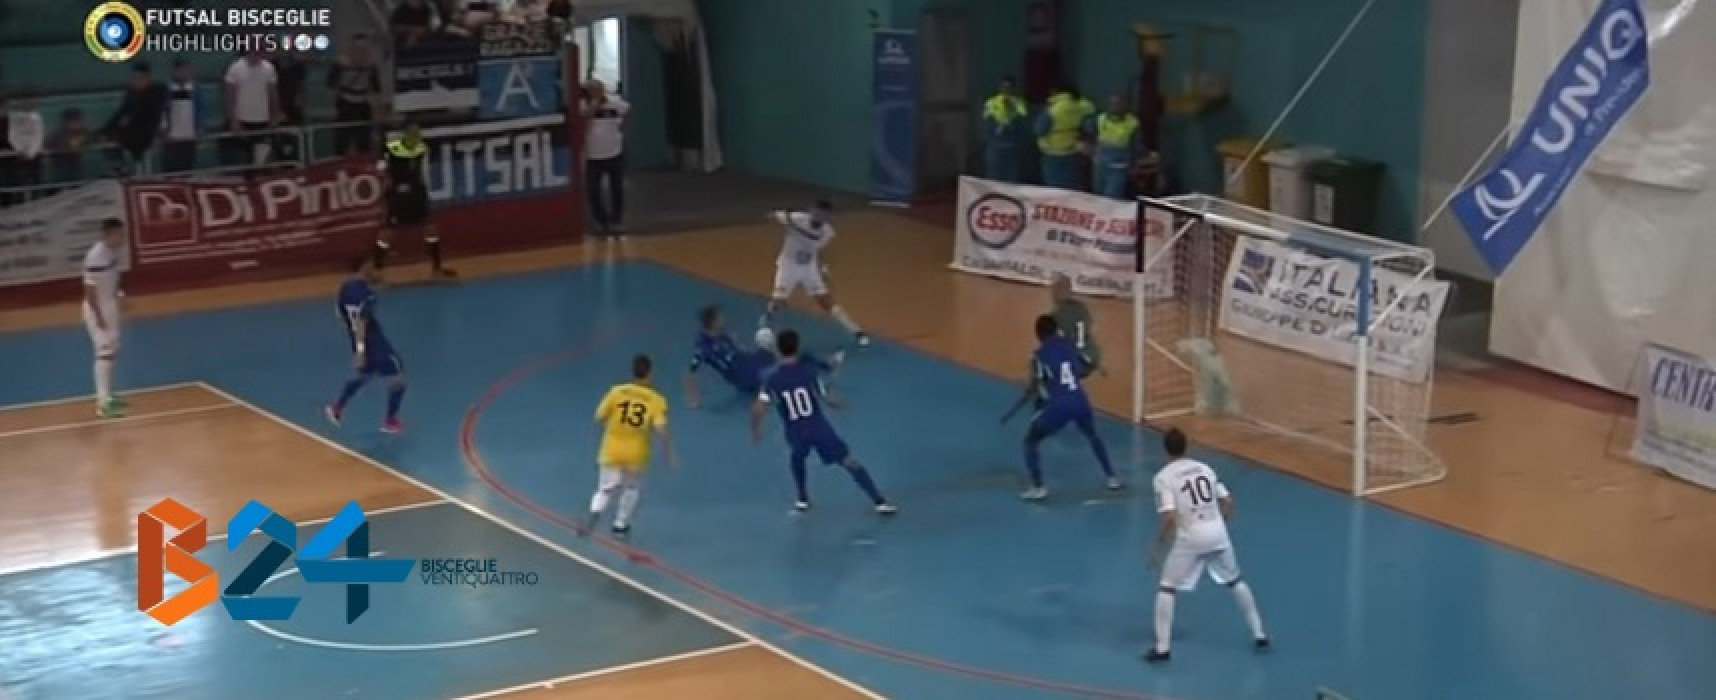 Futsal Bisceglie-Augusta 2-3 / VIDEO HIGHLIGHTS